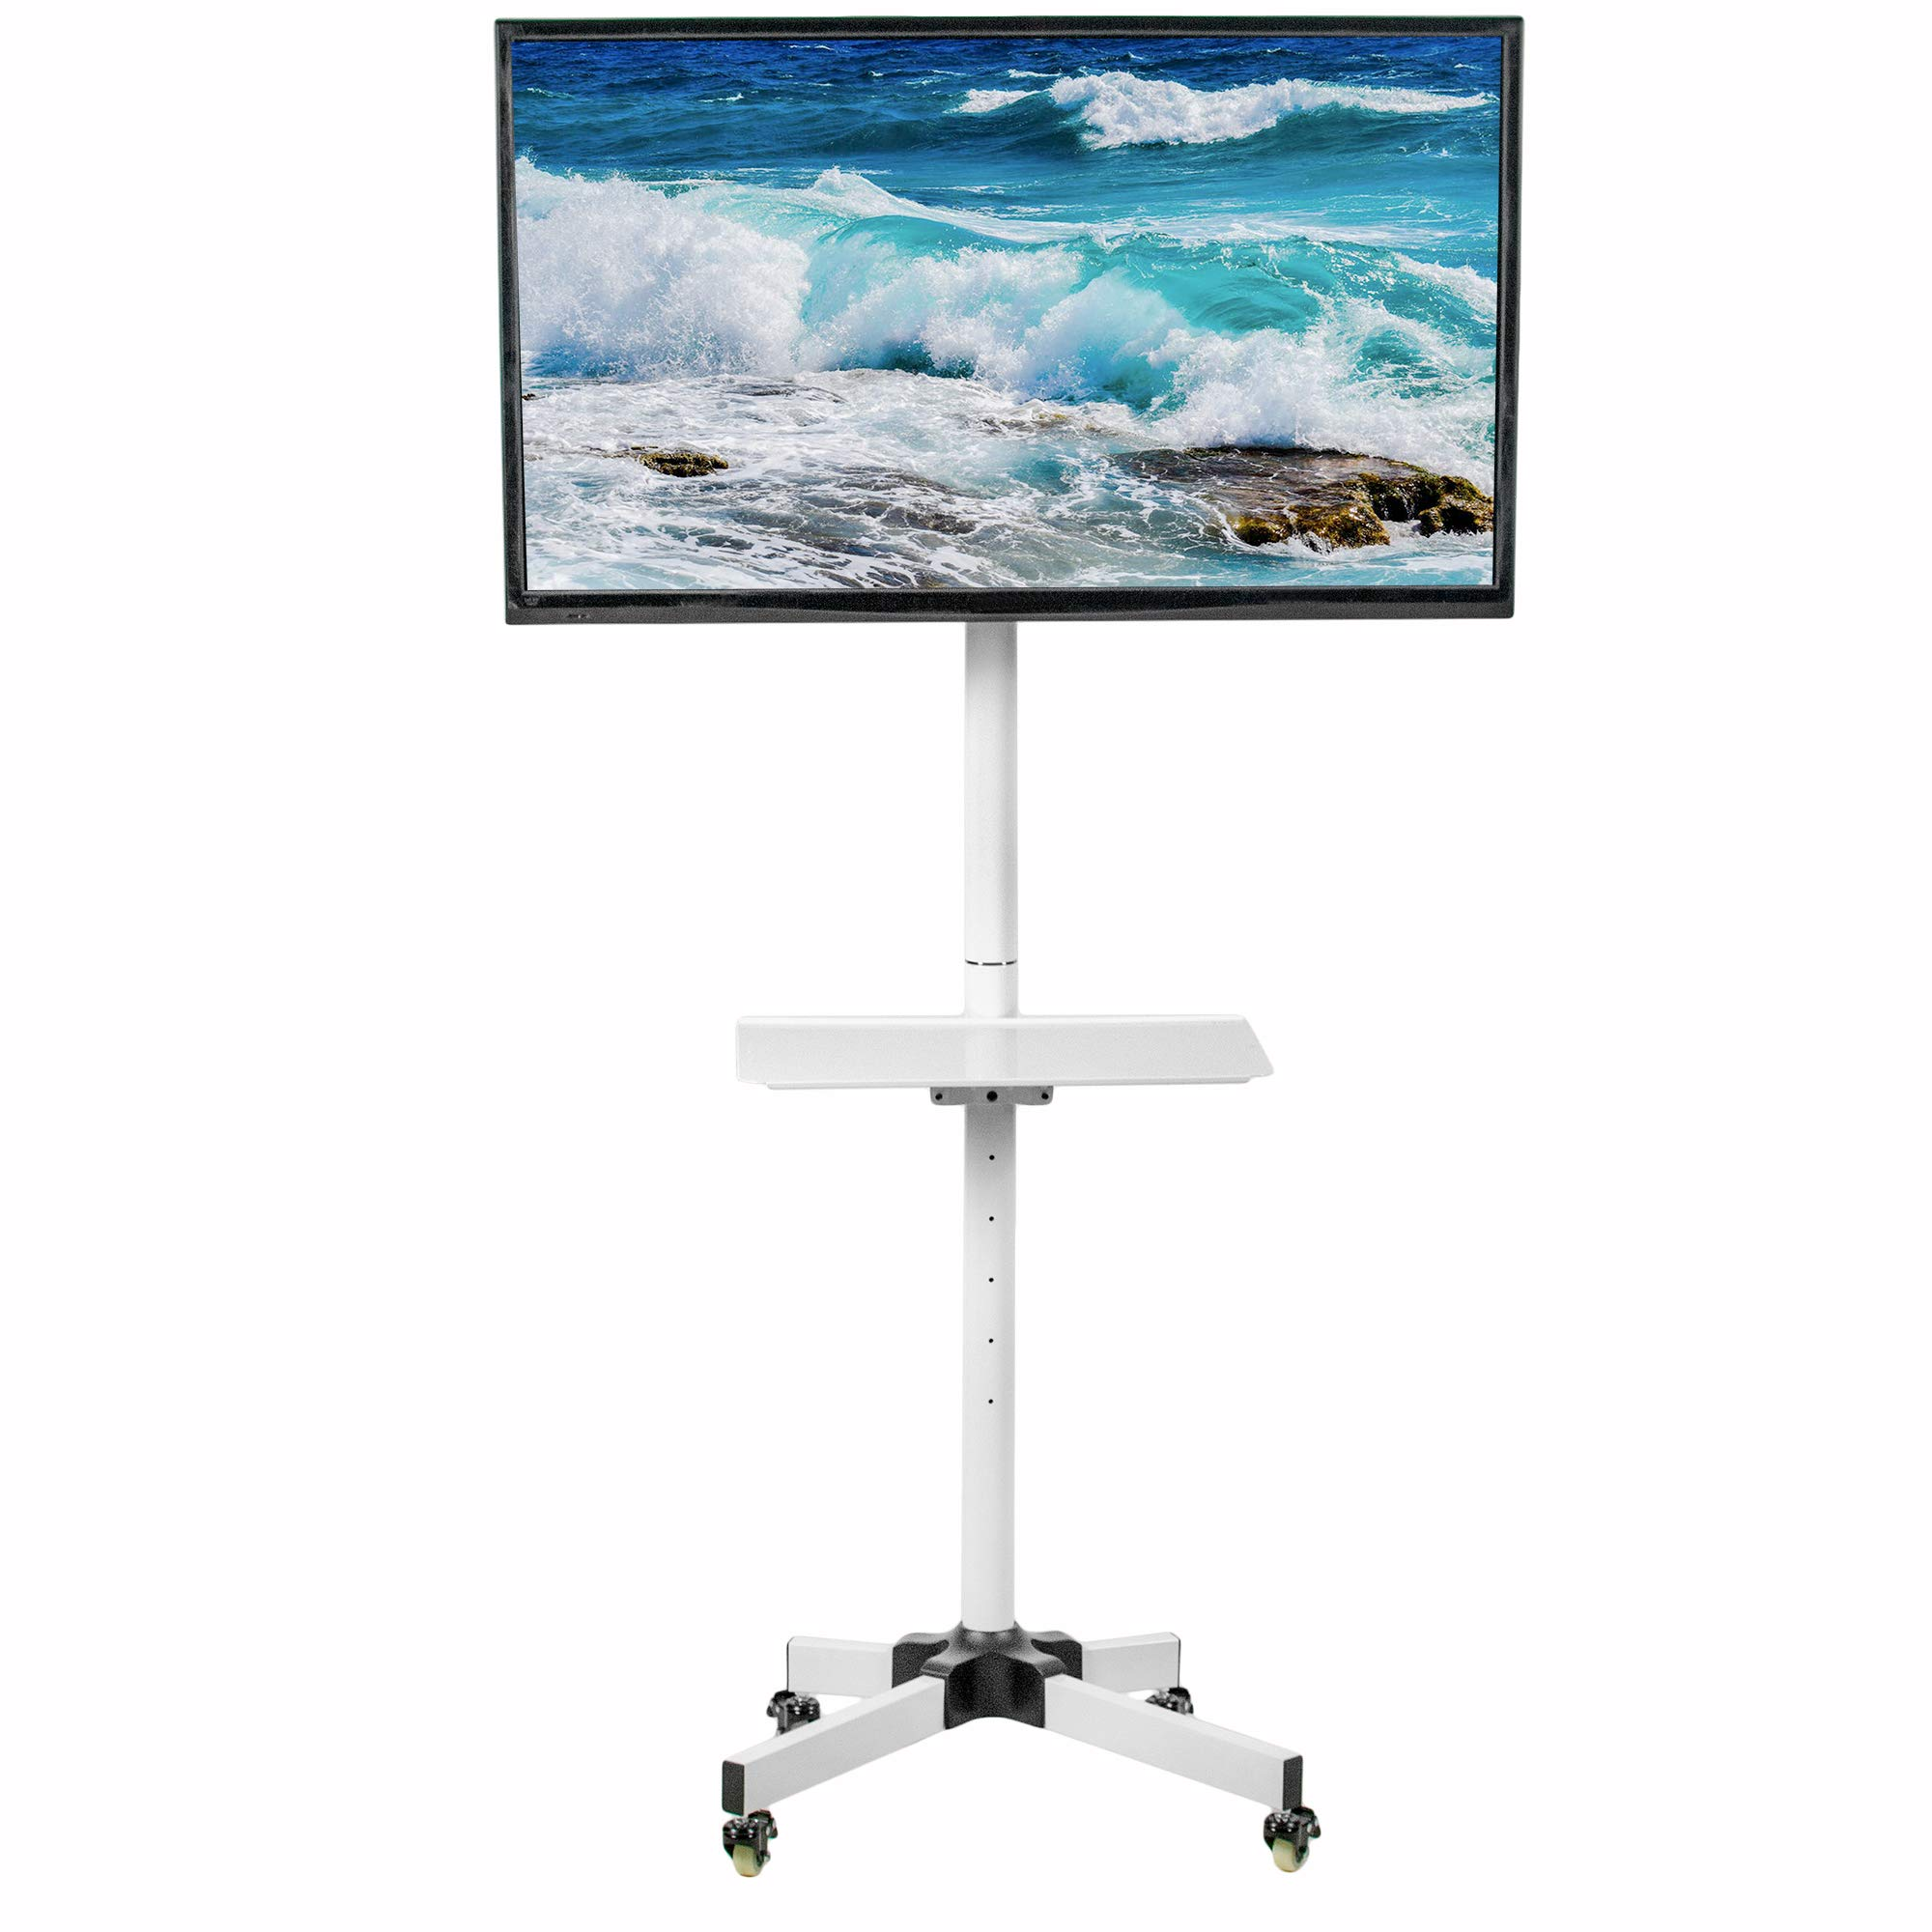 VIVO White Mobile TV Cart for 23 to 55 inch LCD LED Plasma Flat Screen Panel | Trolley Floor Stand with Locking Wheels (STAND-TV04MW) by VIVO